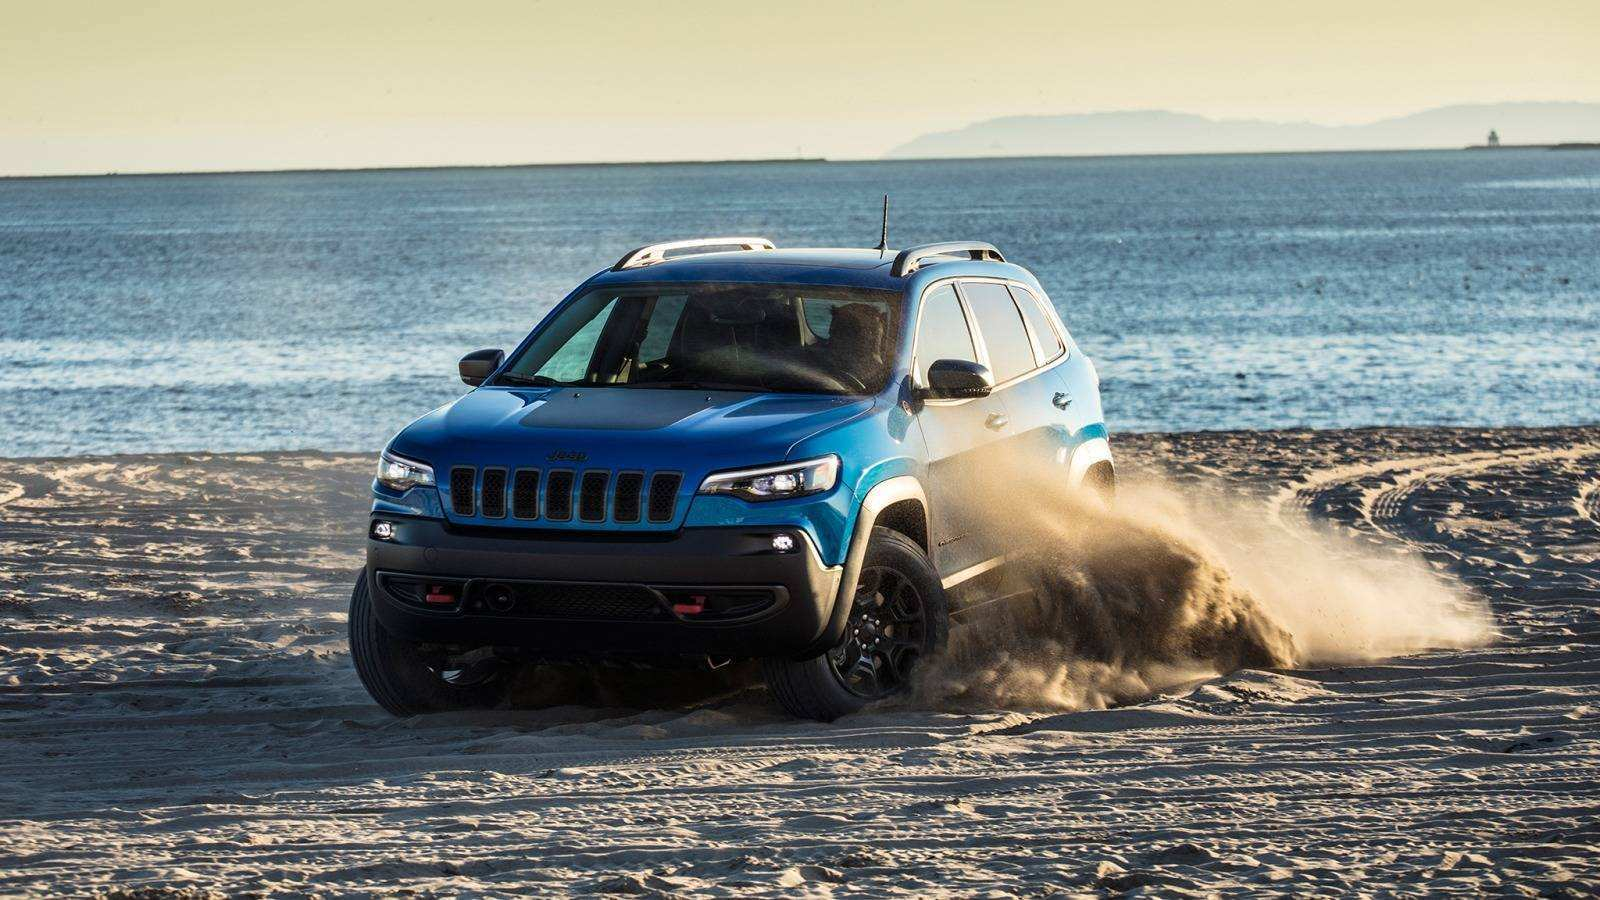 21 New New 2019 Jeep Cherokee Horsepower Release Specs And Review Price and Review with New 2019 Jeep Cherokee Horsepower Release Specs And Review